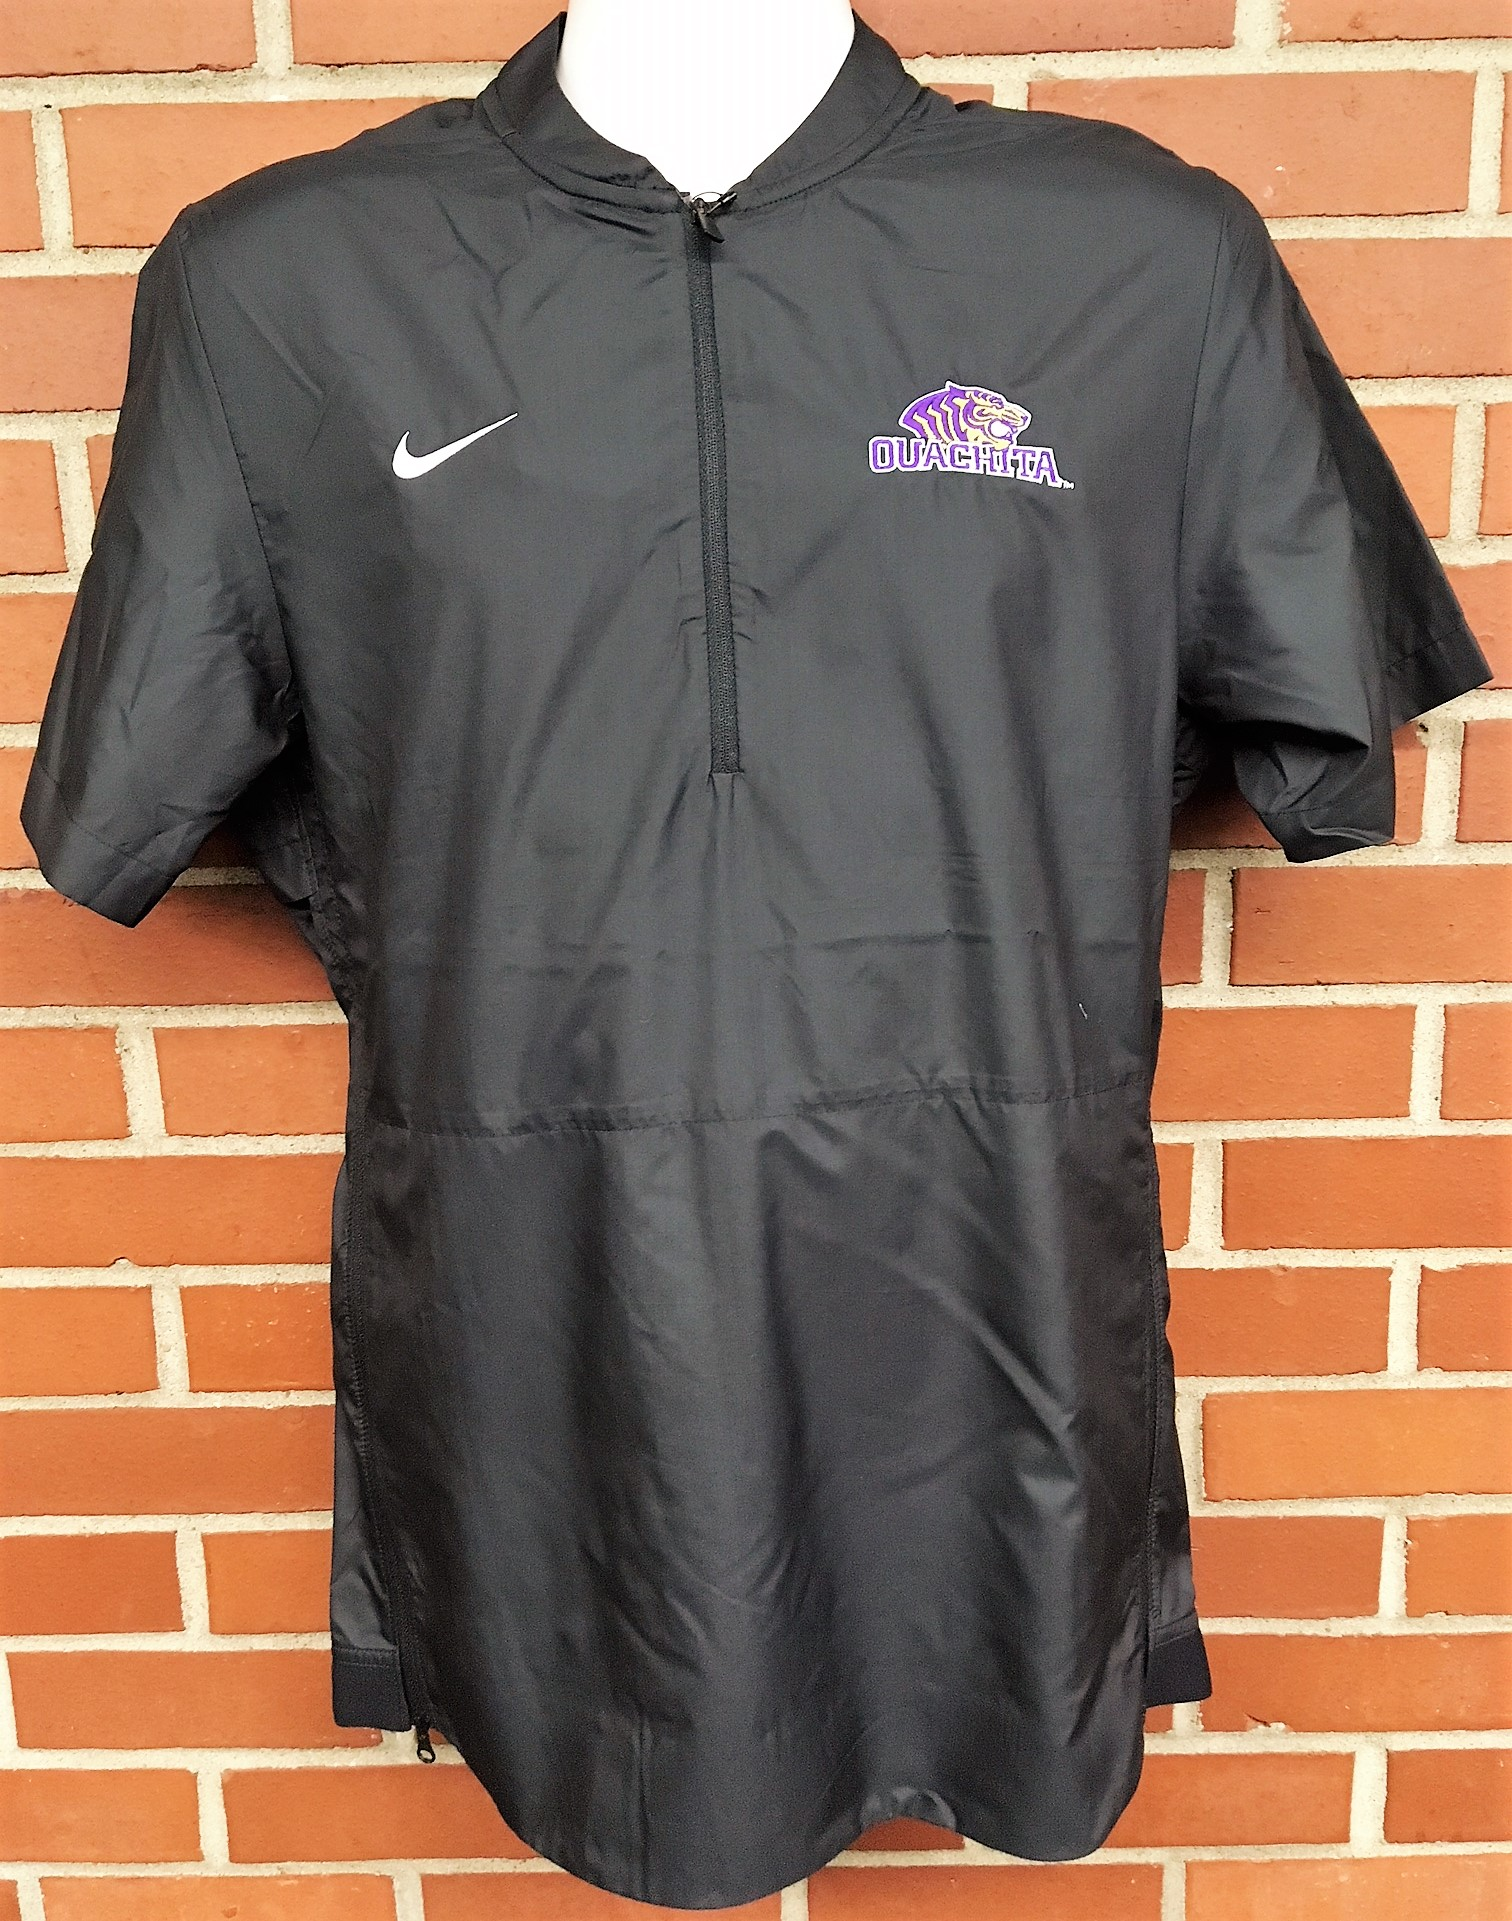 OUACHITA LOCKDOWN JACKET